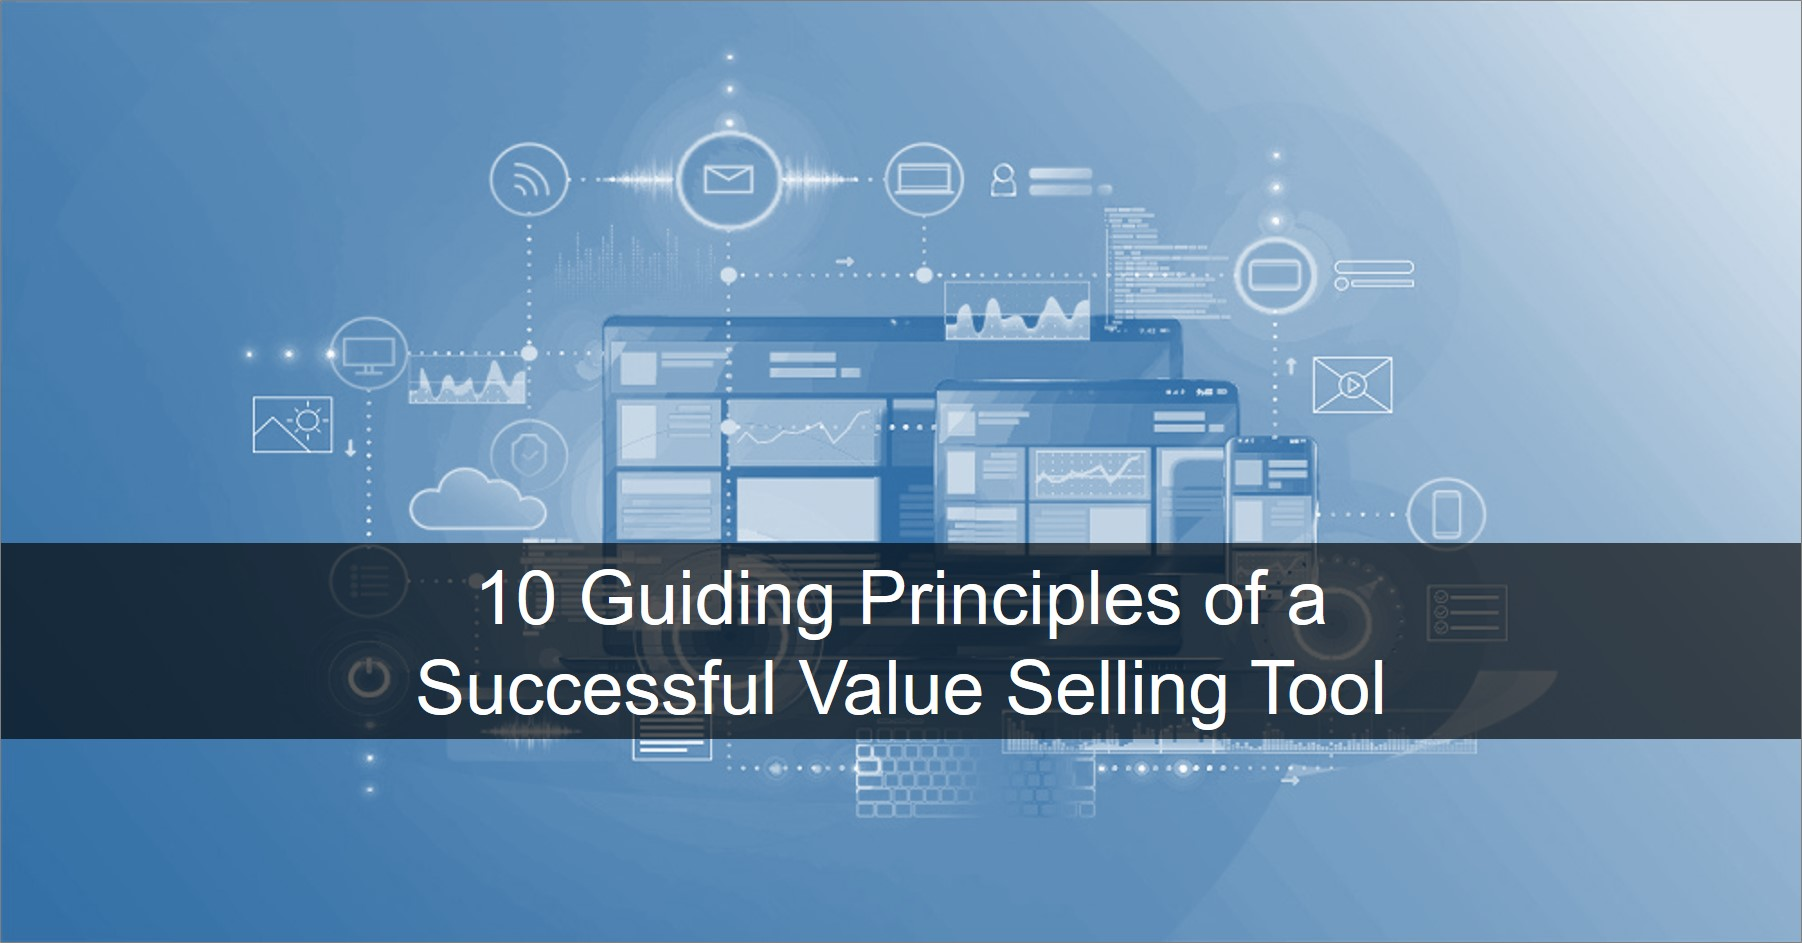 Blog 20210311 - Guiding Principles Value Selling Tools-1